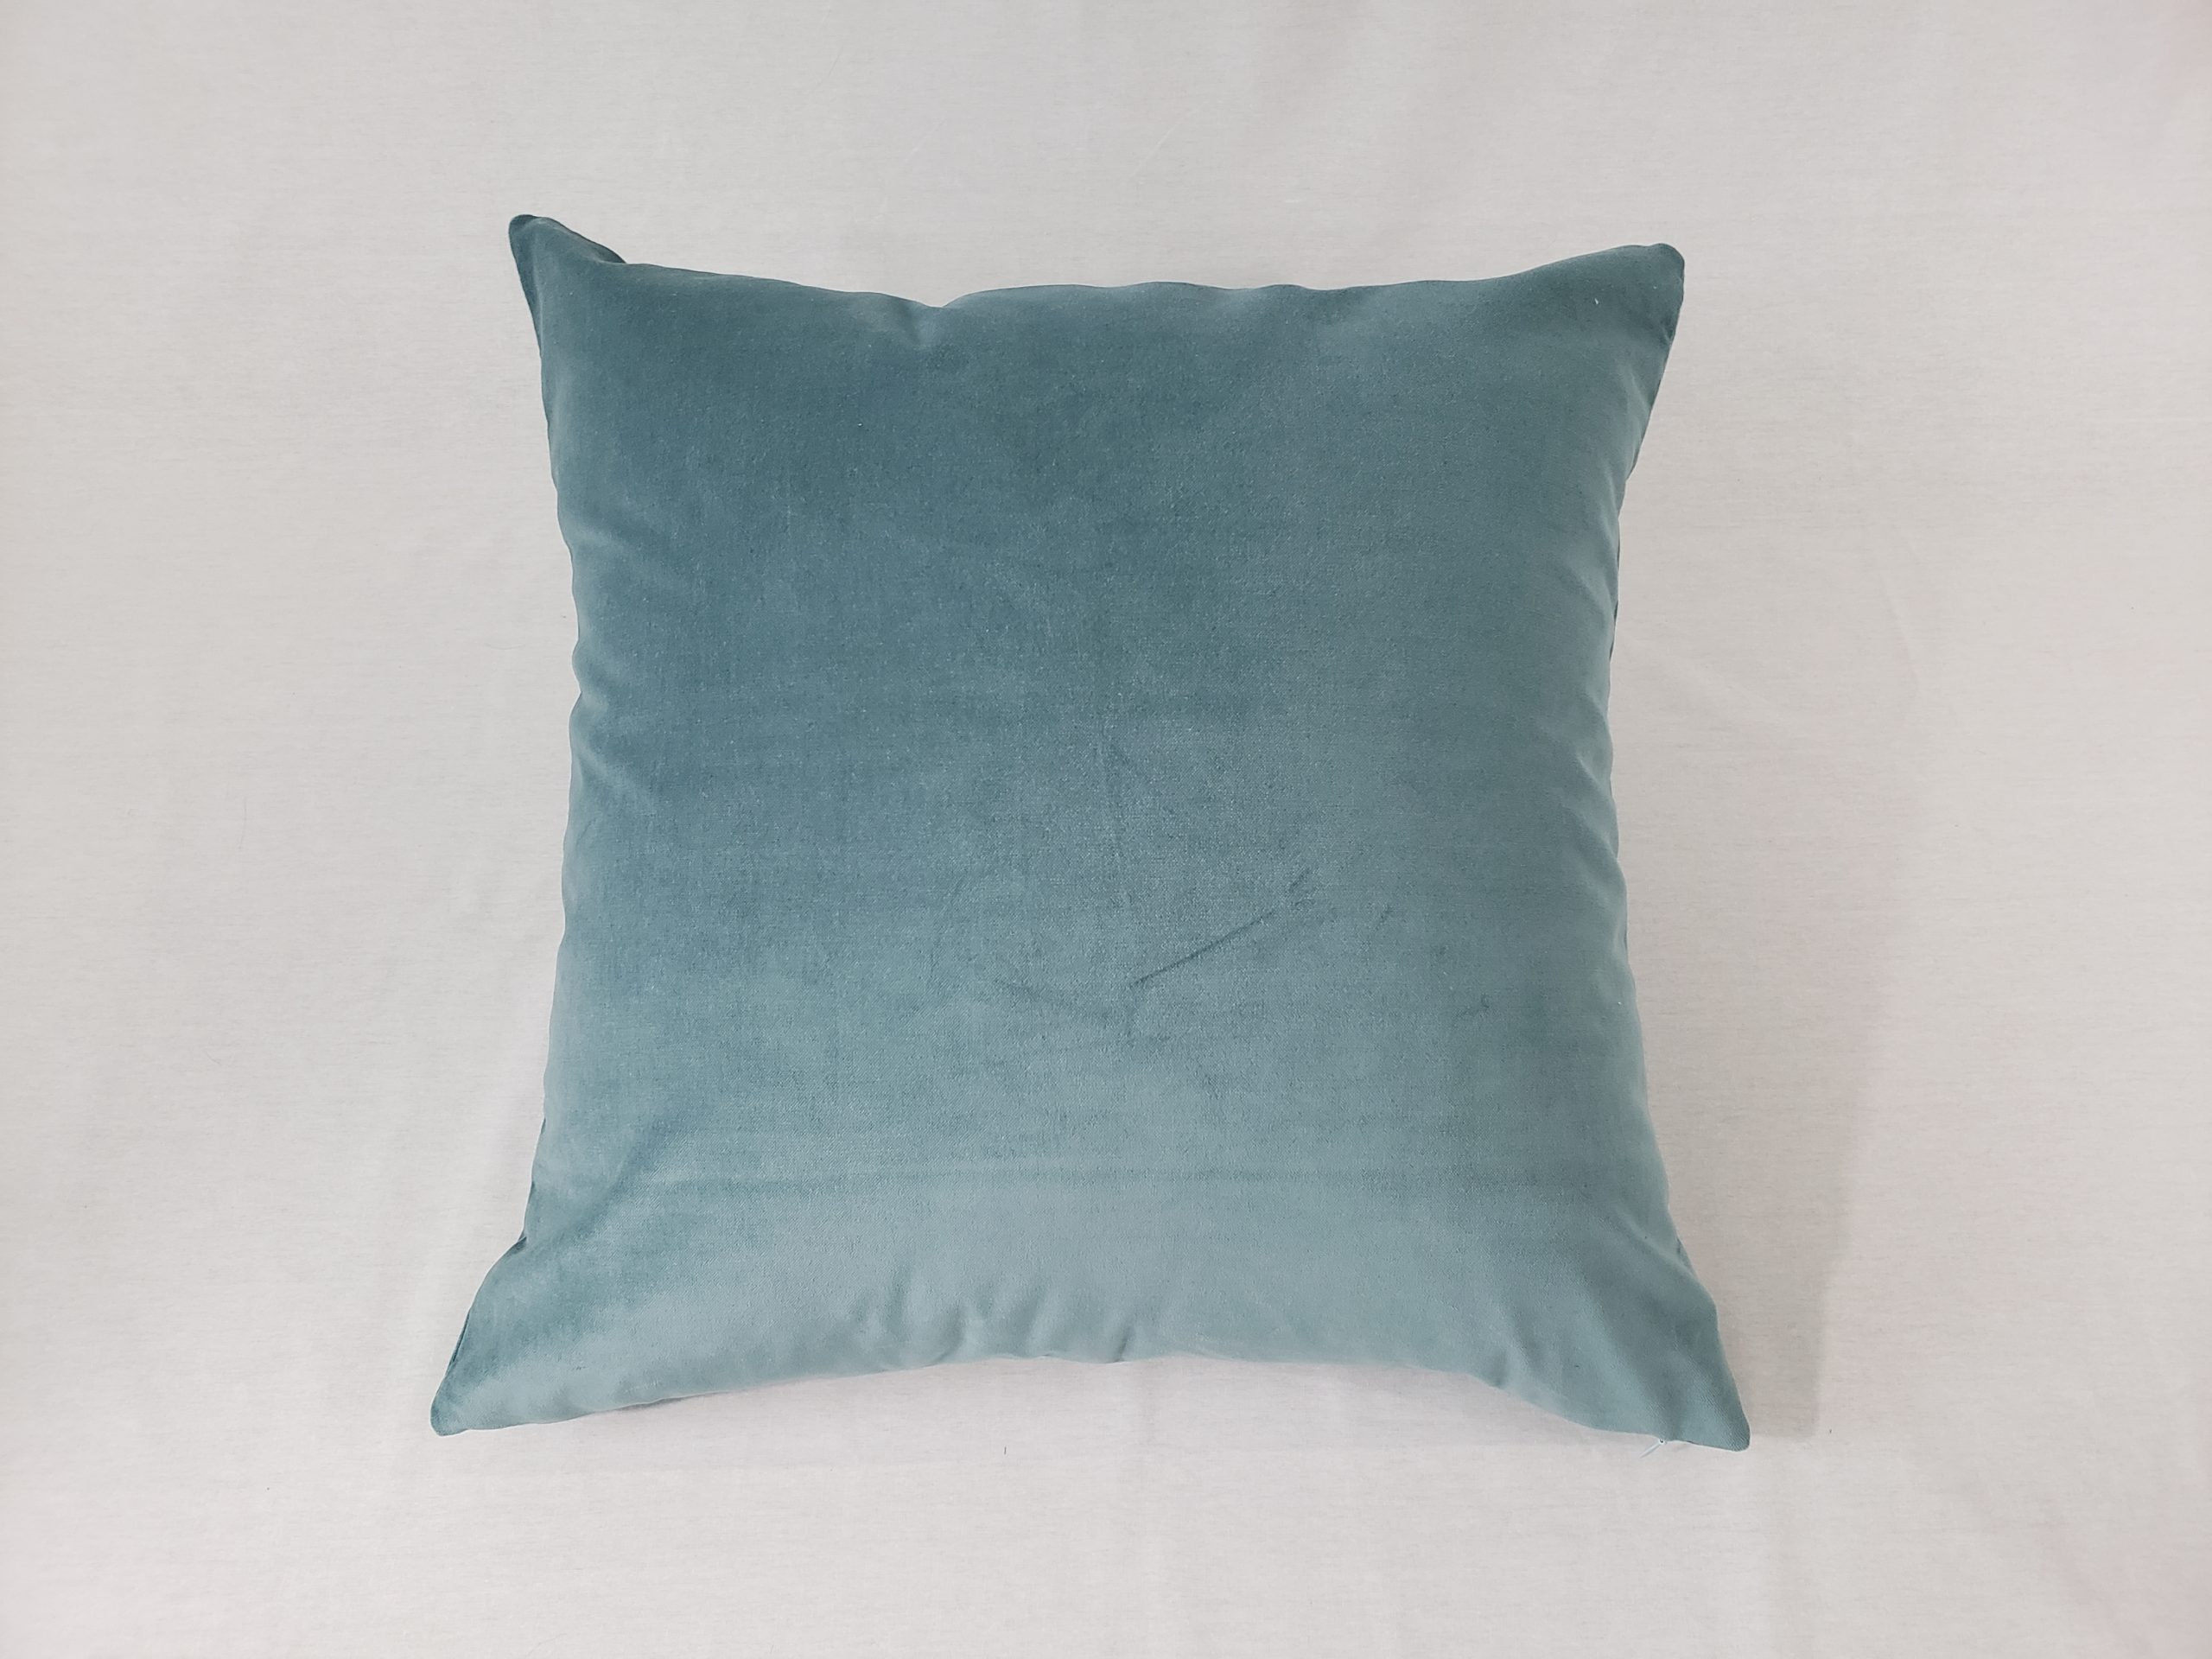 A seafoam green velvet cushion